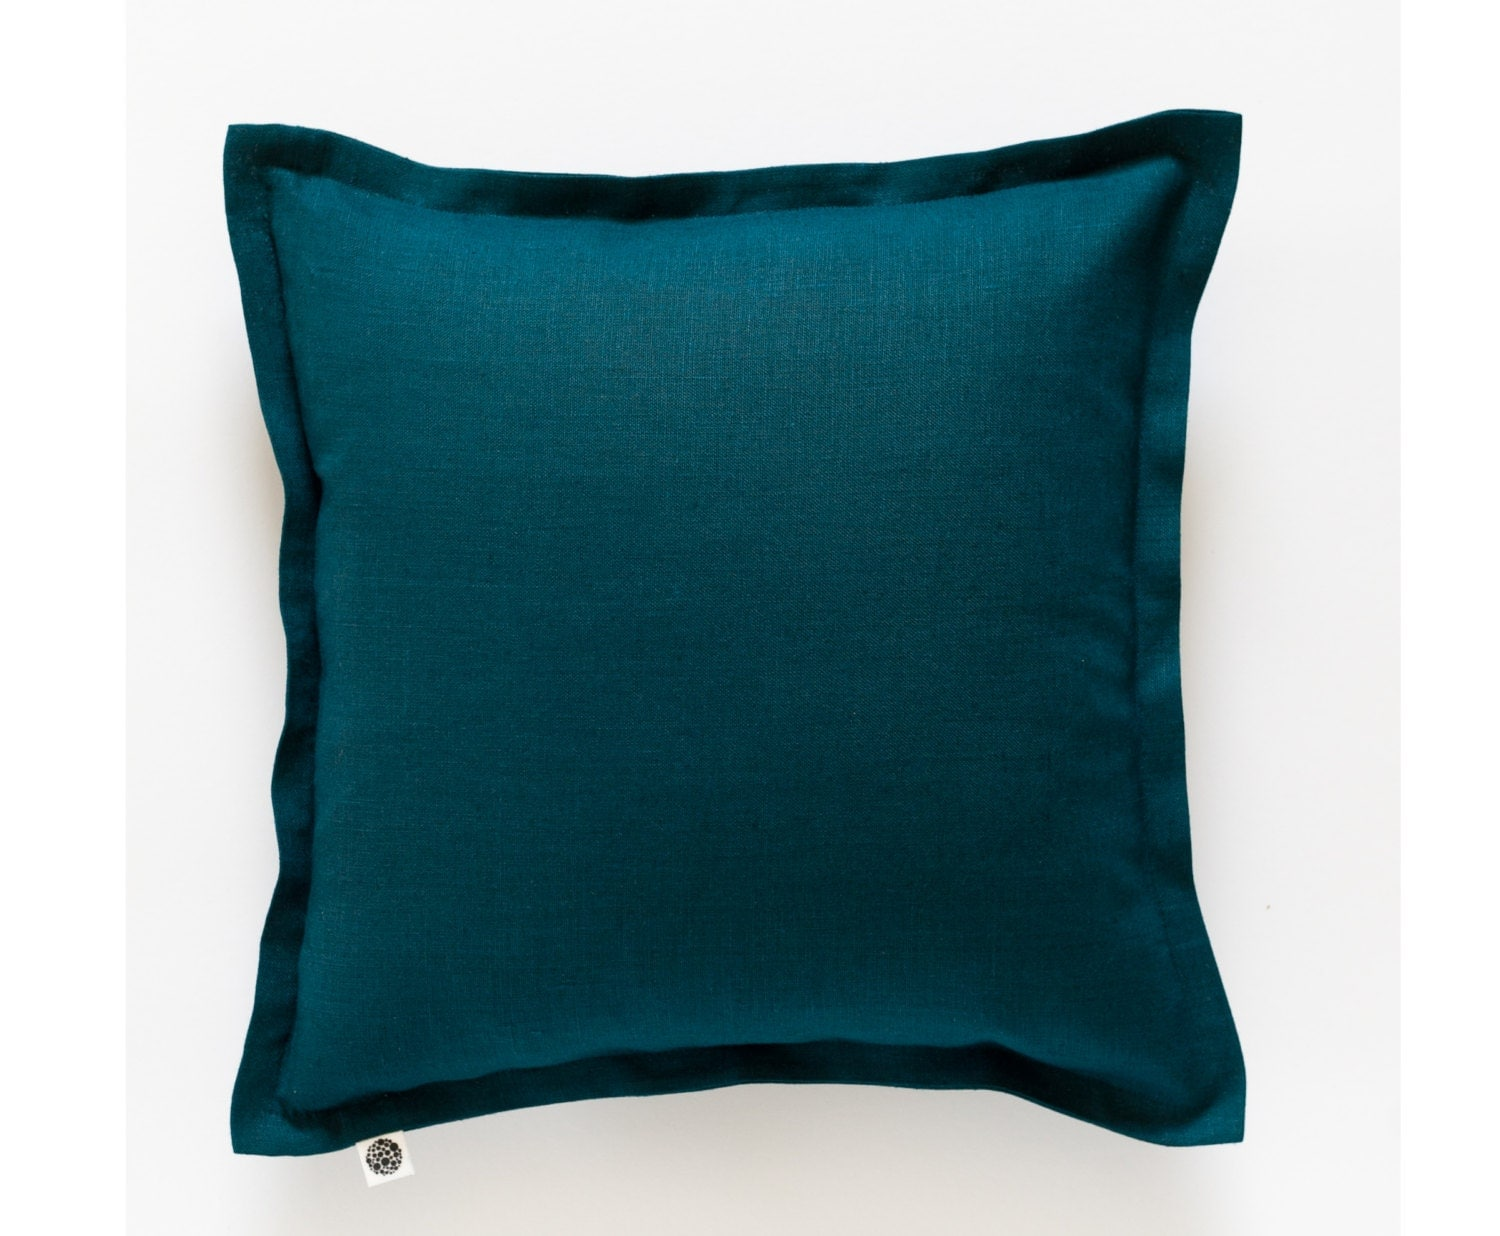 Teal Blue Throw Pillow Covers : Teal throw pillow cover from linen blue cushion case